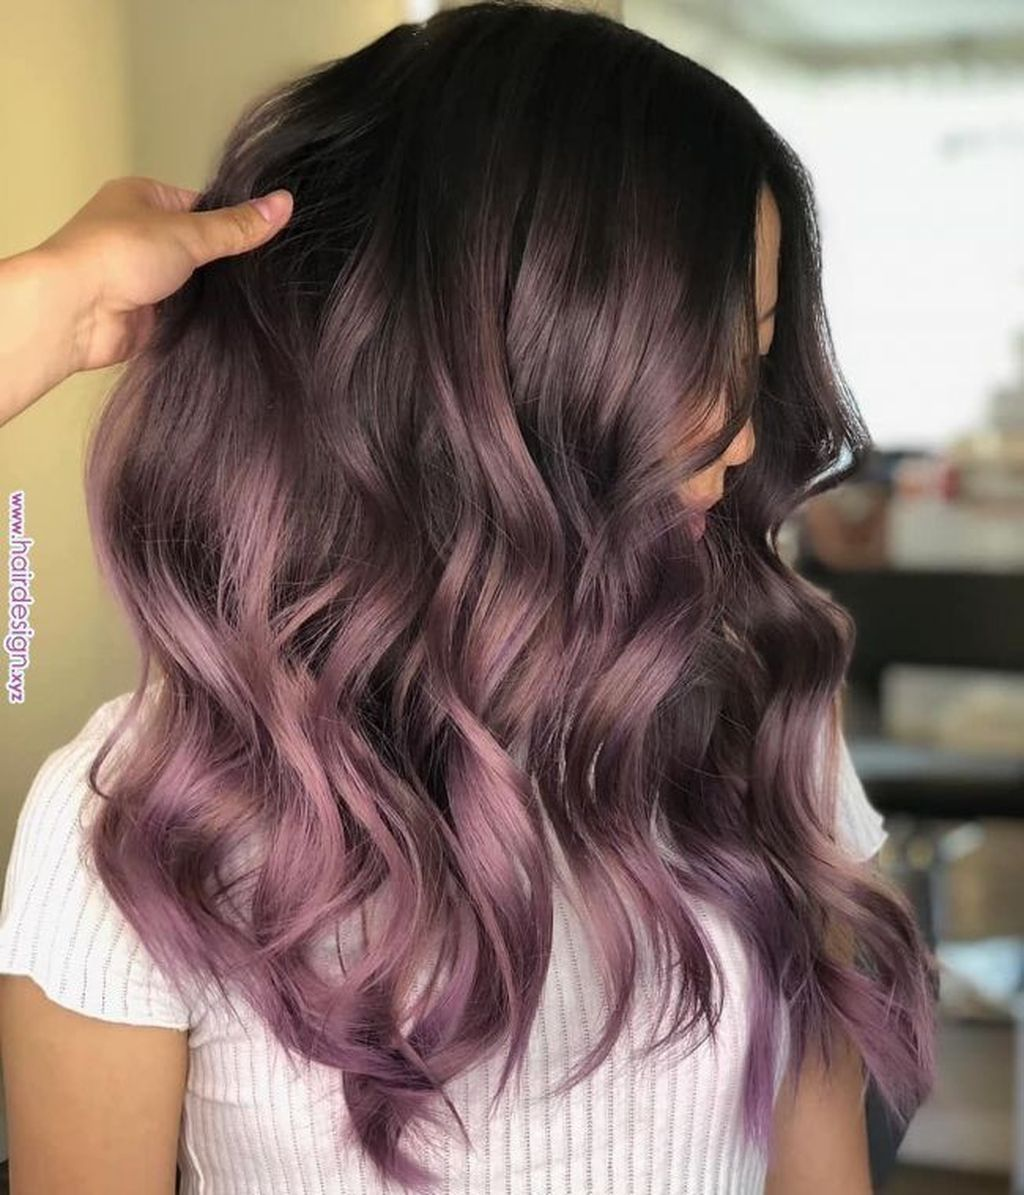 20+ Awesome Balayage Hair Color Ideas For 2019